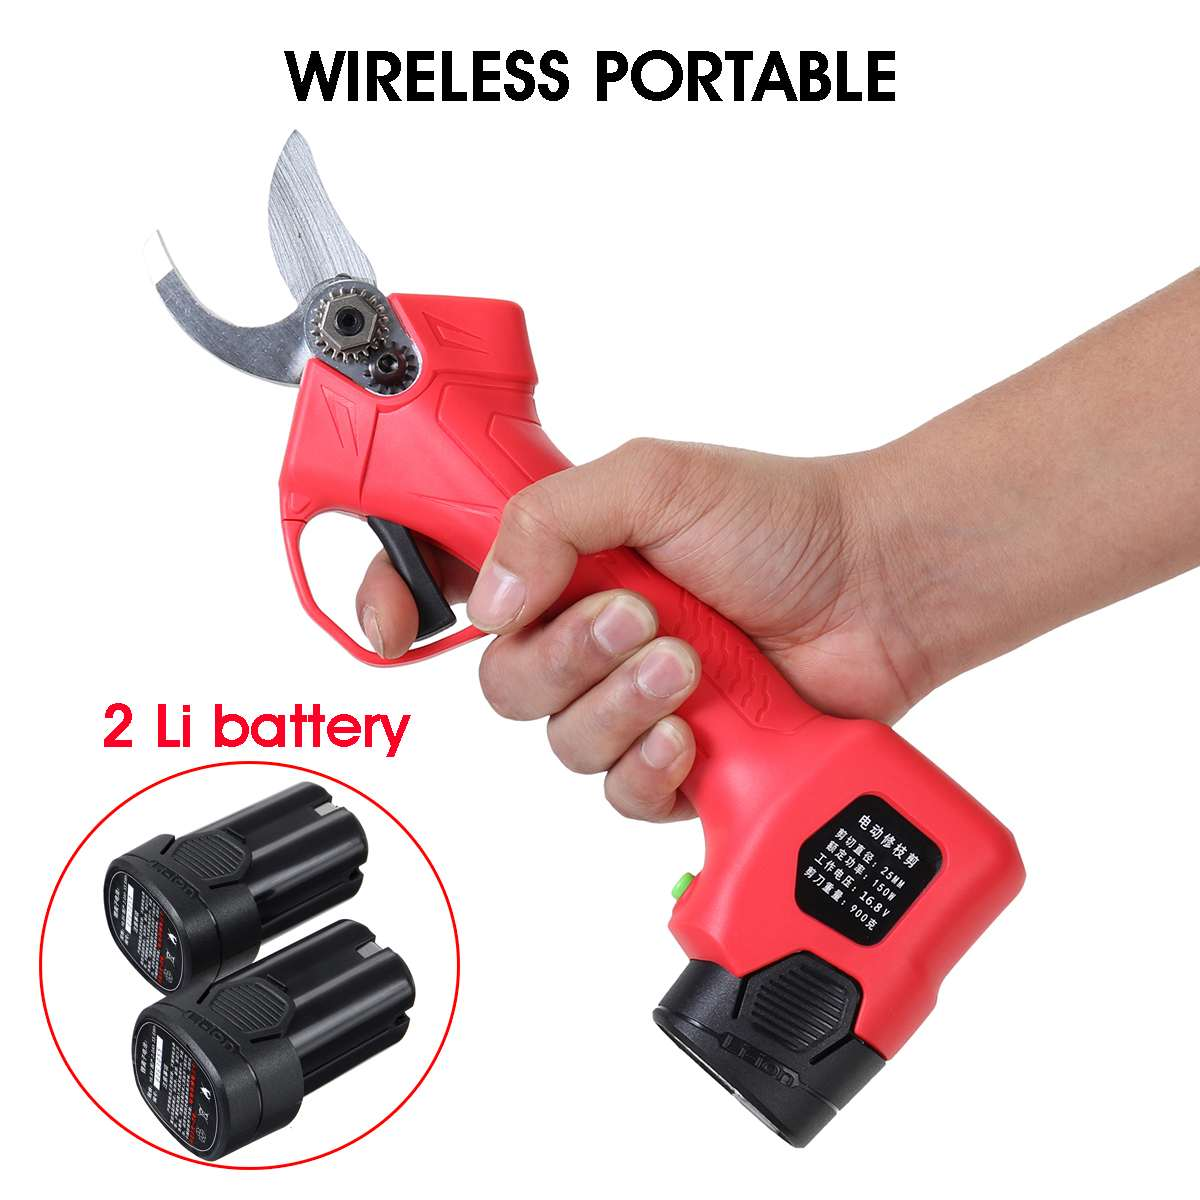 Wireless 16.8V 25mm Electric Garden Scissor for Brach Pruning with Li-ion Battery and USB Charger 9